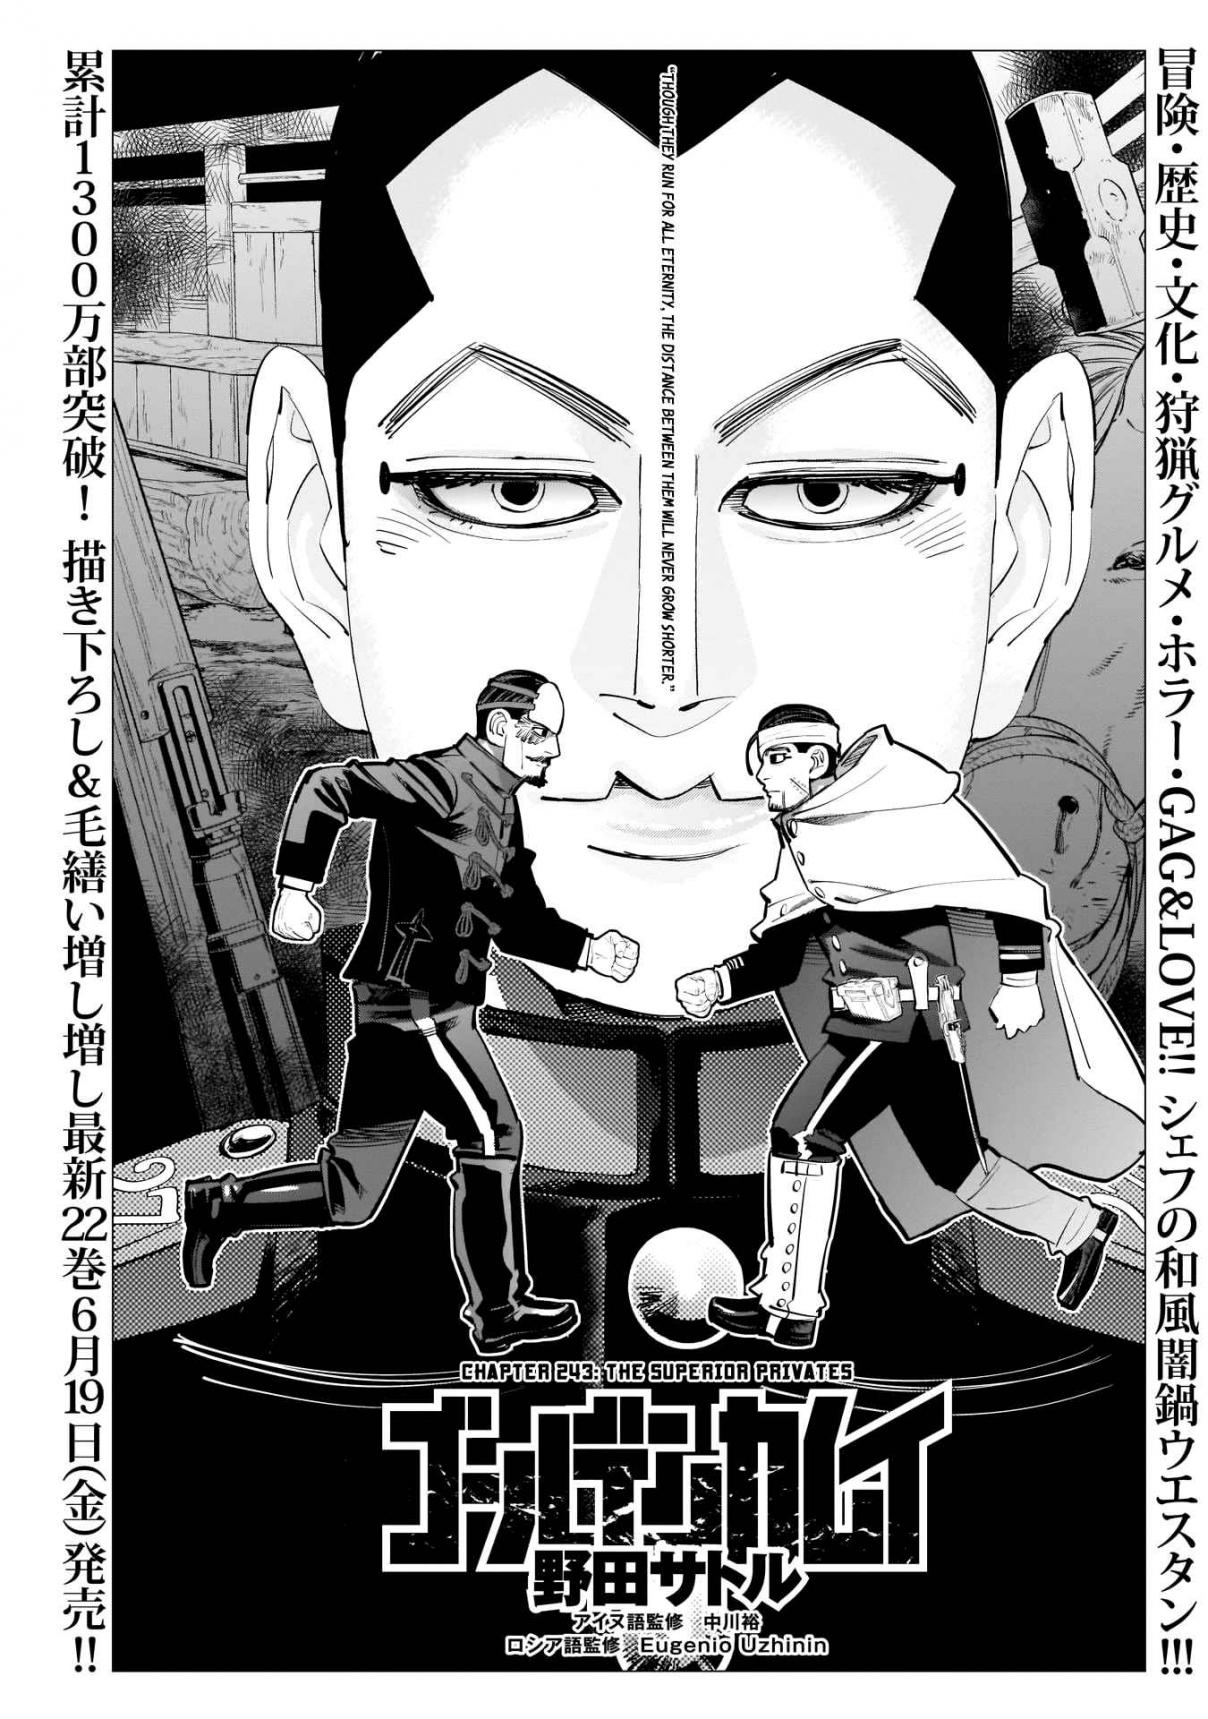 Golden Kamuy Ch. 243 The Superior Privates